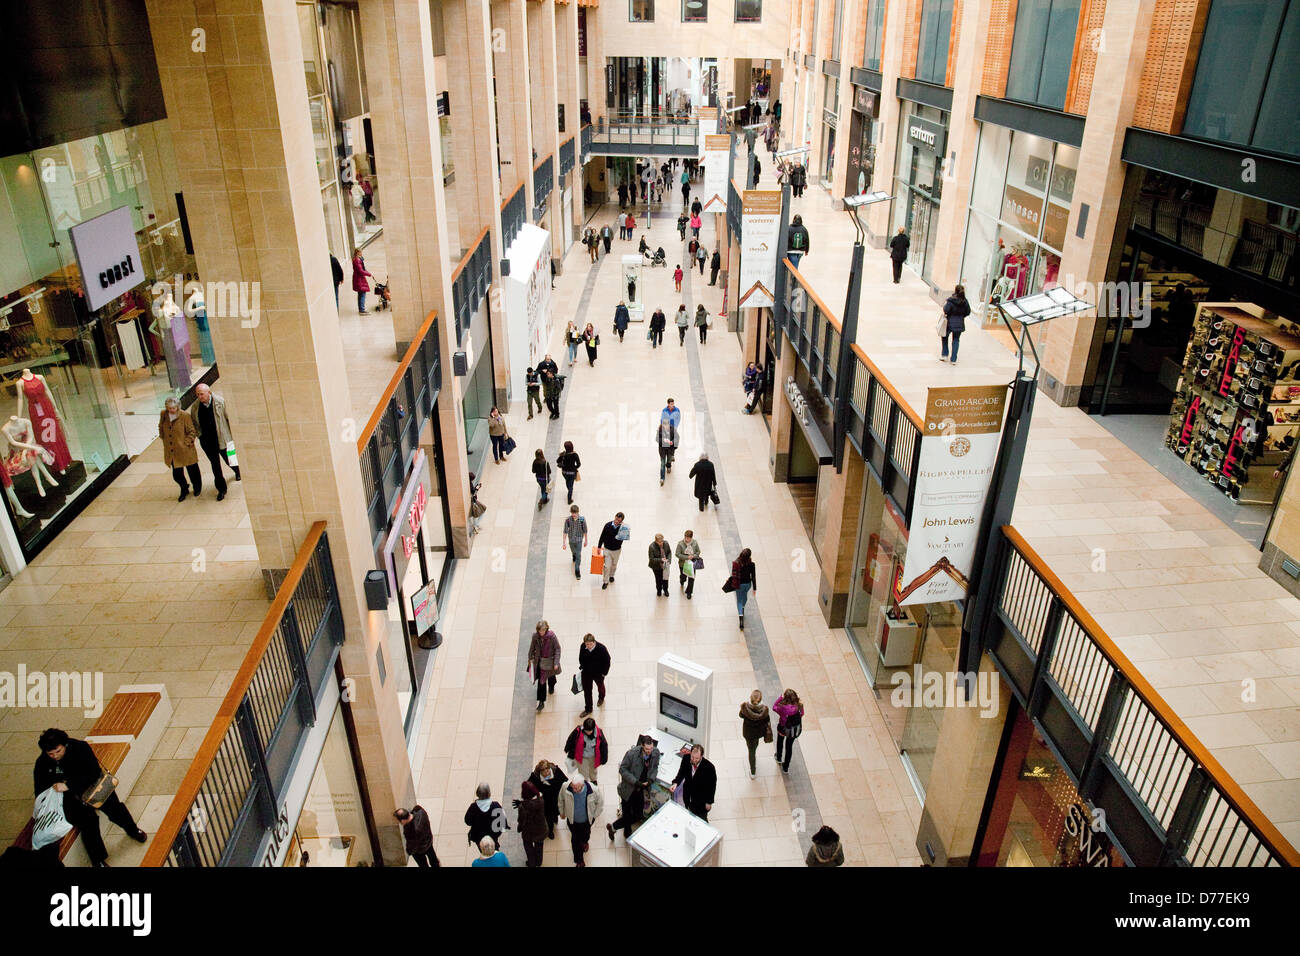 Shoppers in The Grand Arcade Shopping Mall, Cambridge UK, 2013 - Stock Image